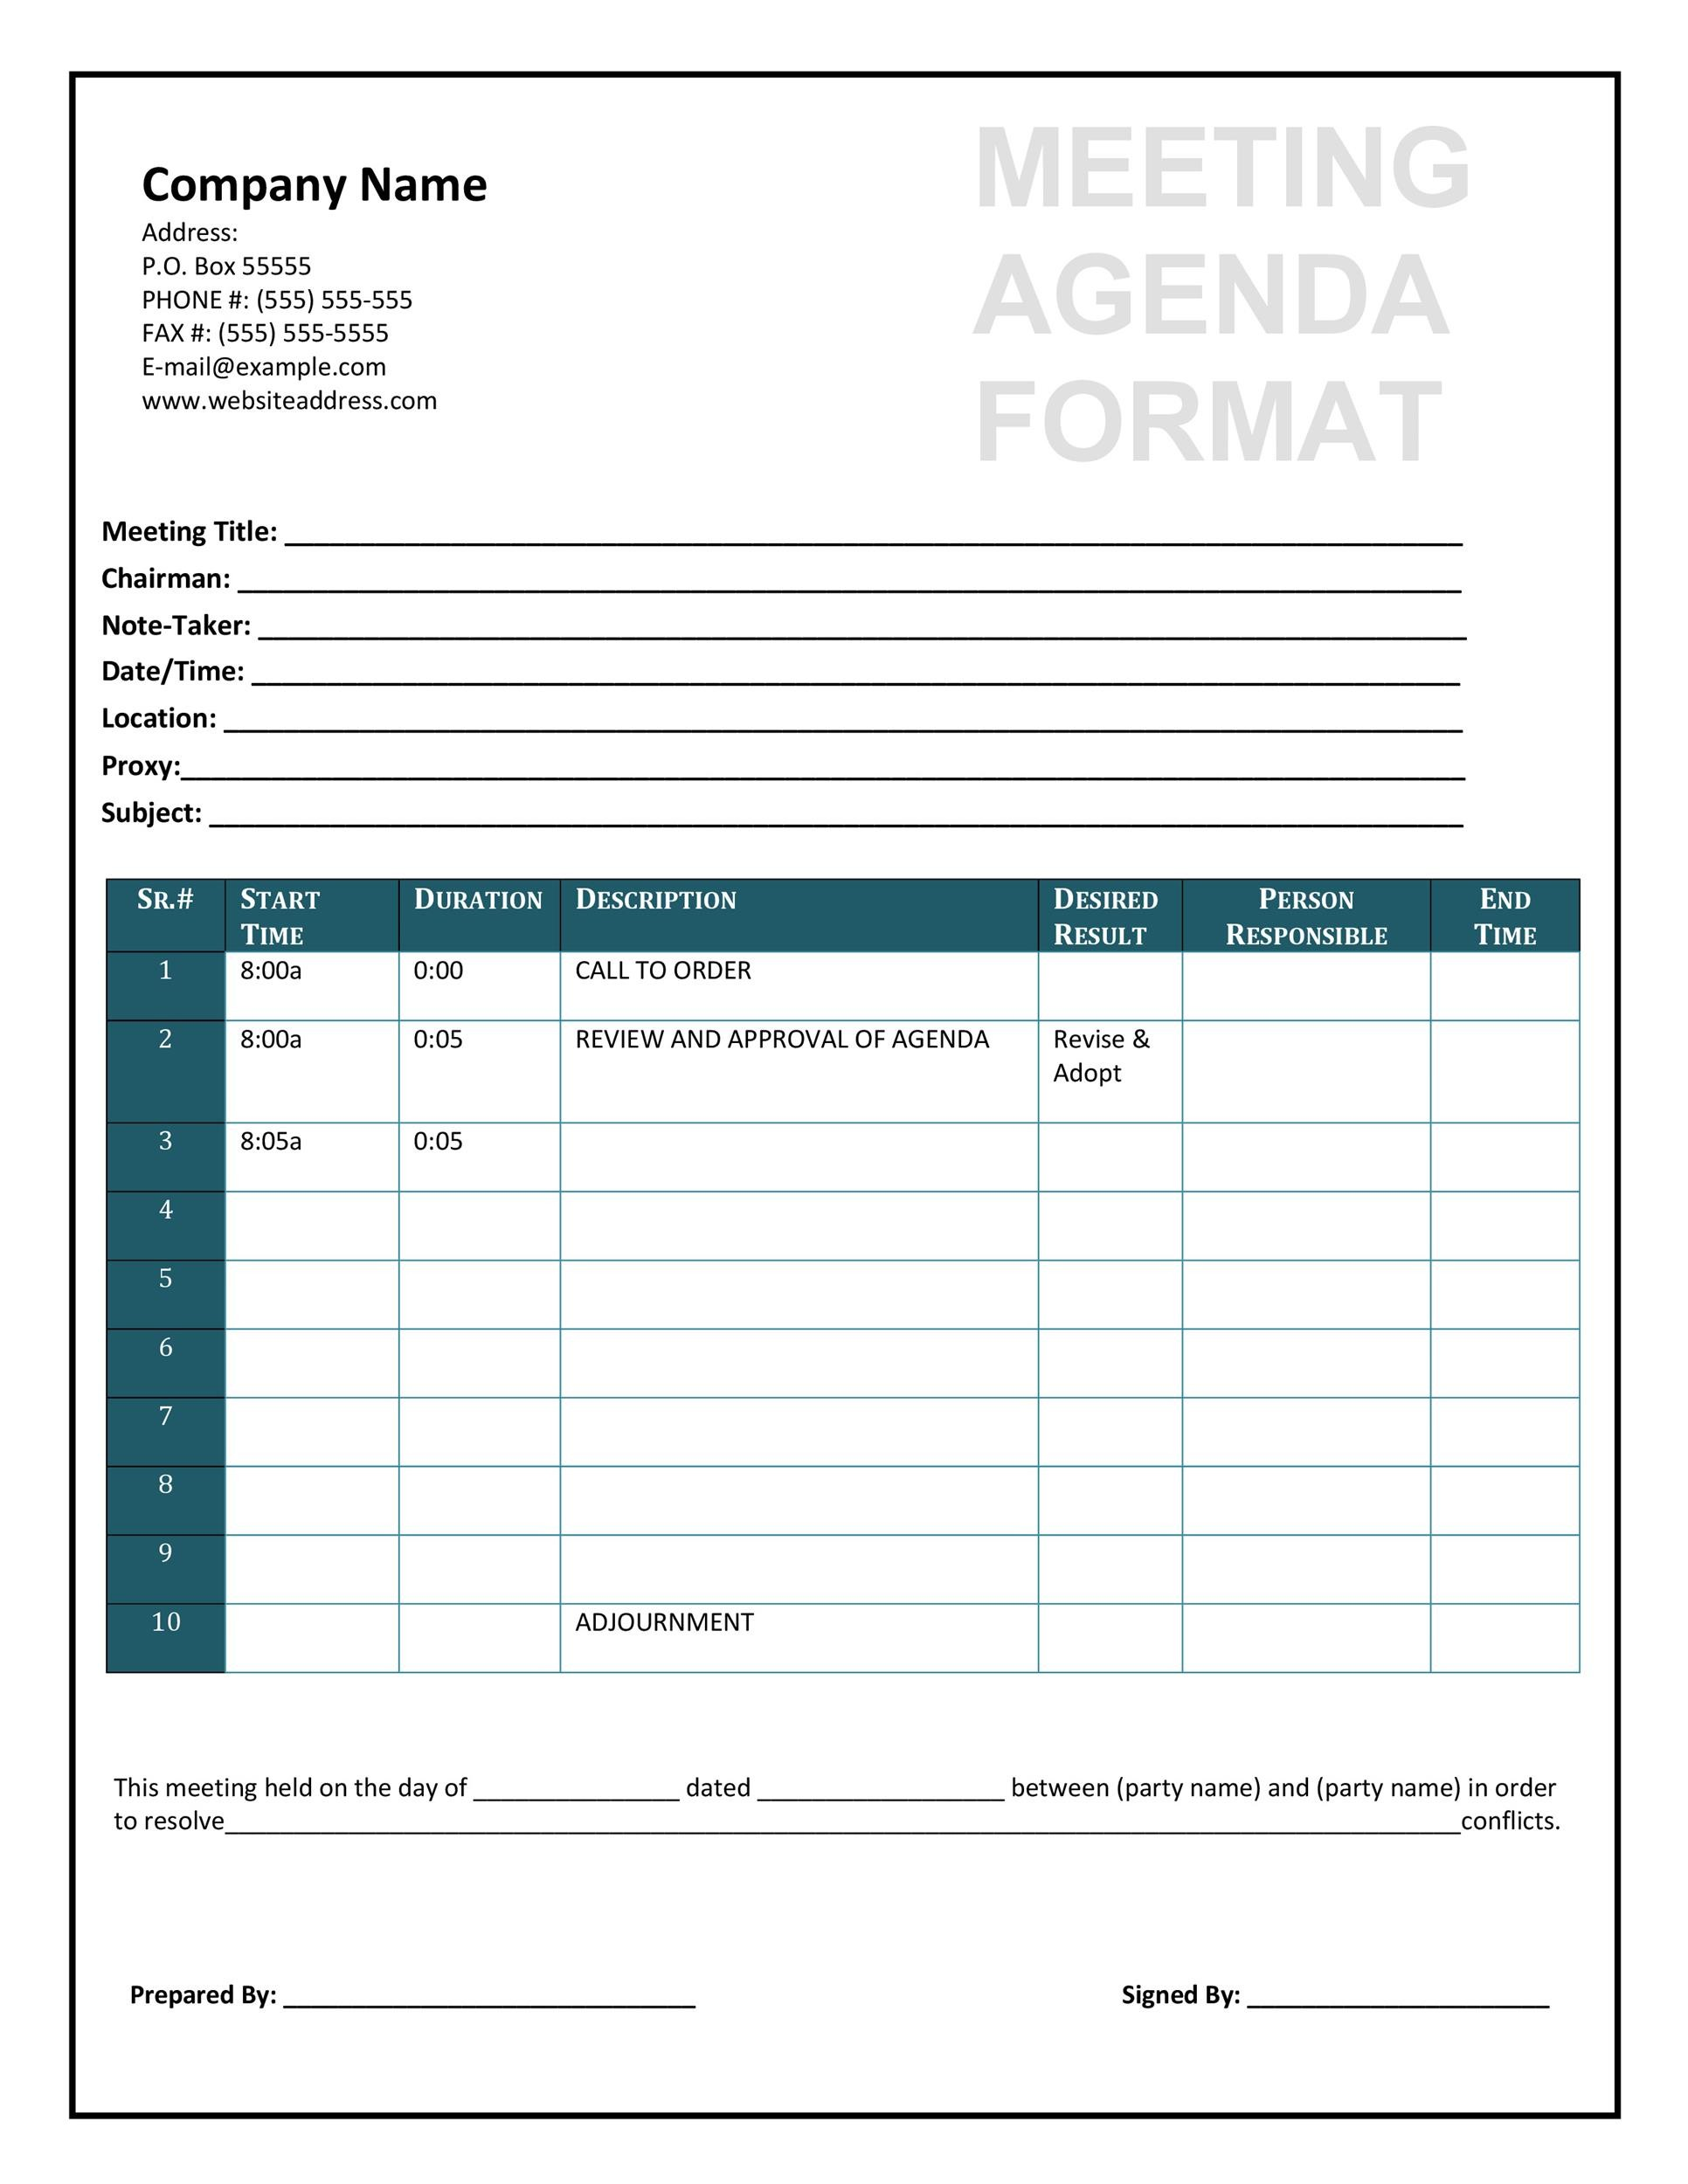 Meeting Agenda Template 09